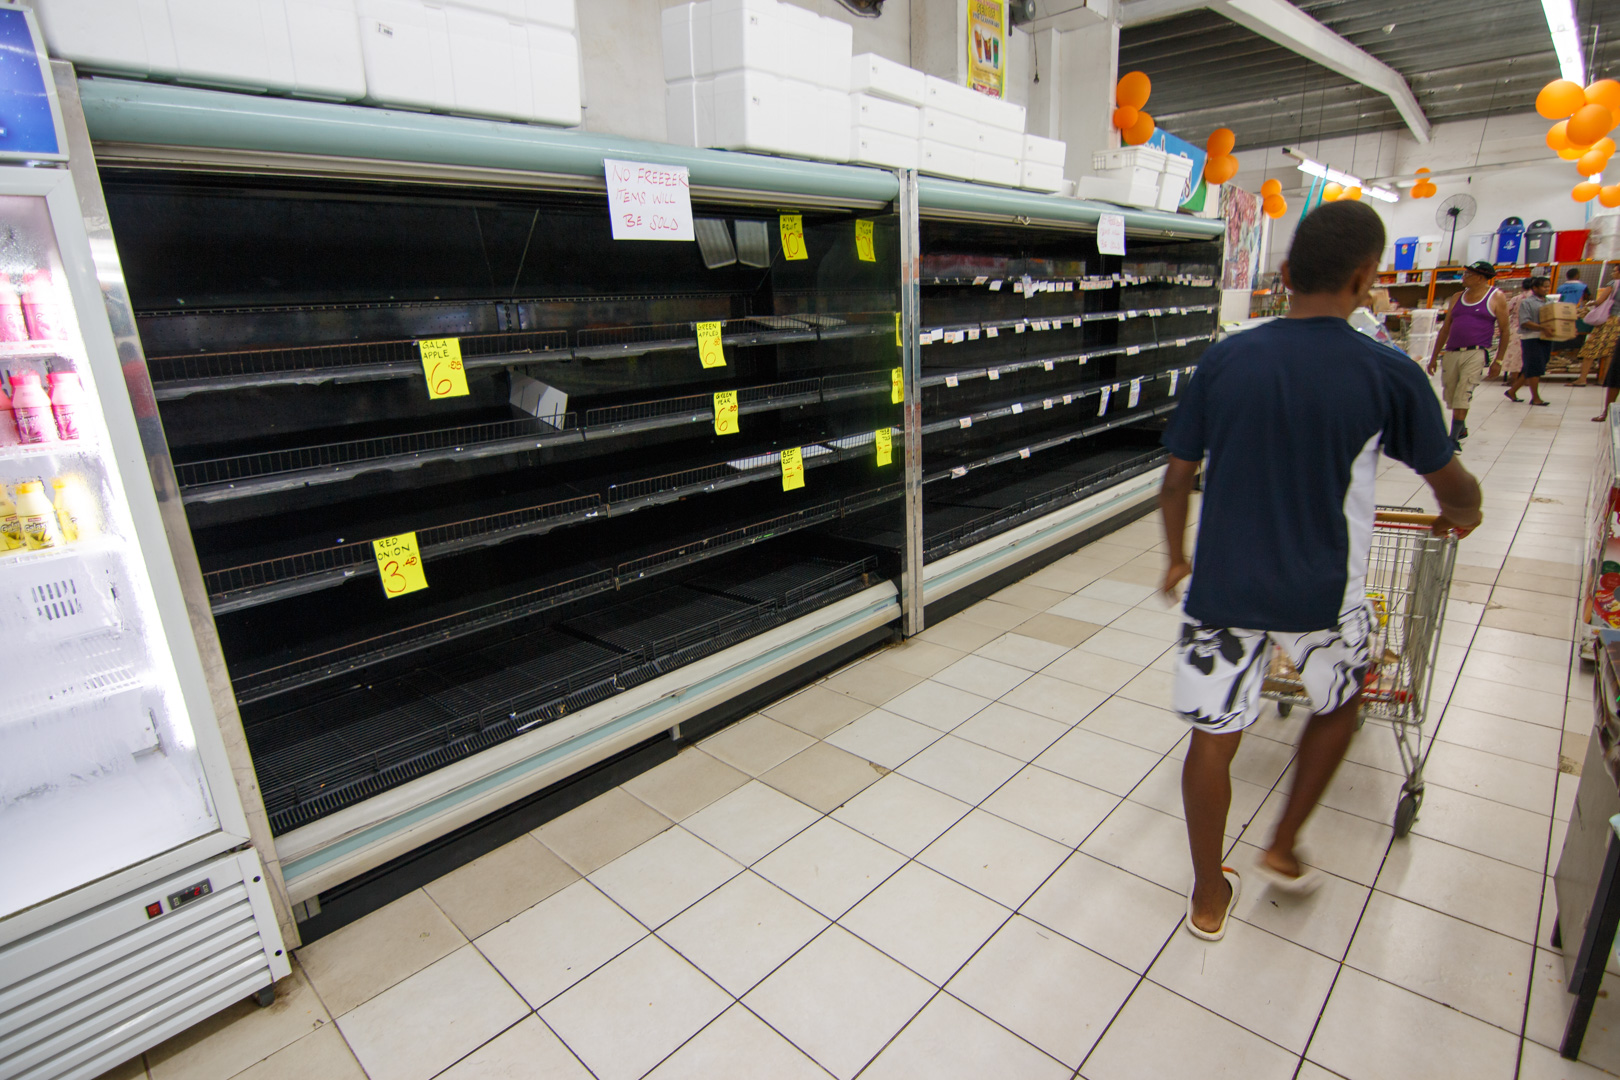 The refrigerated section of a supermarket lays empty of products after power losses due to Cyclone Winston in Fiji's capital Suva, February 22, 2016.